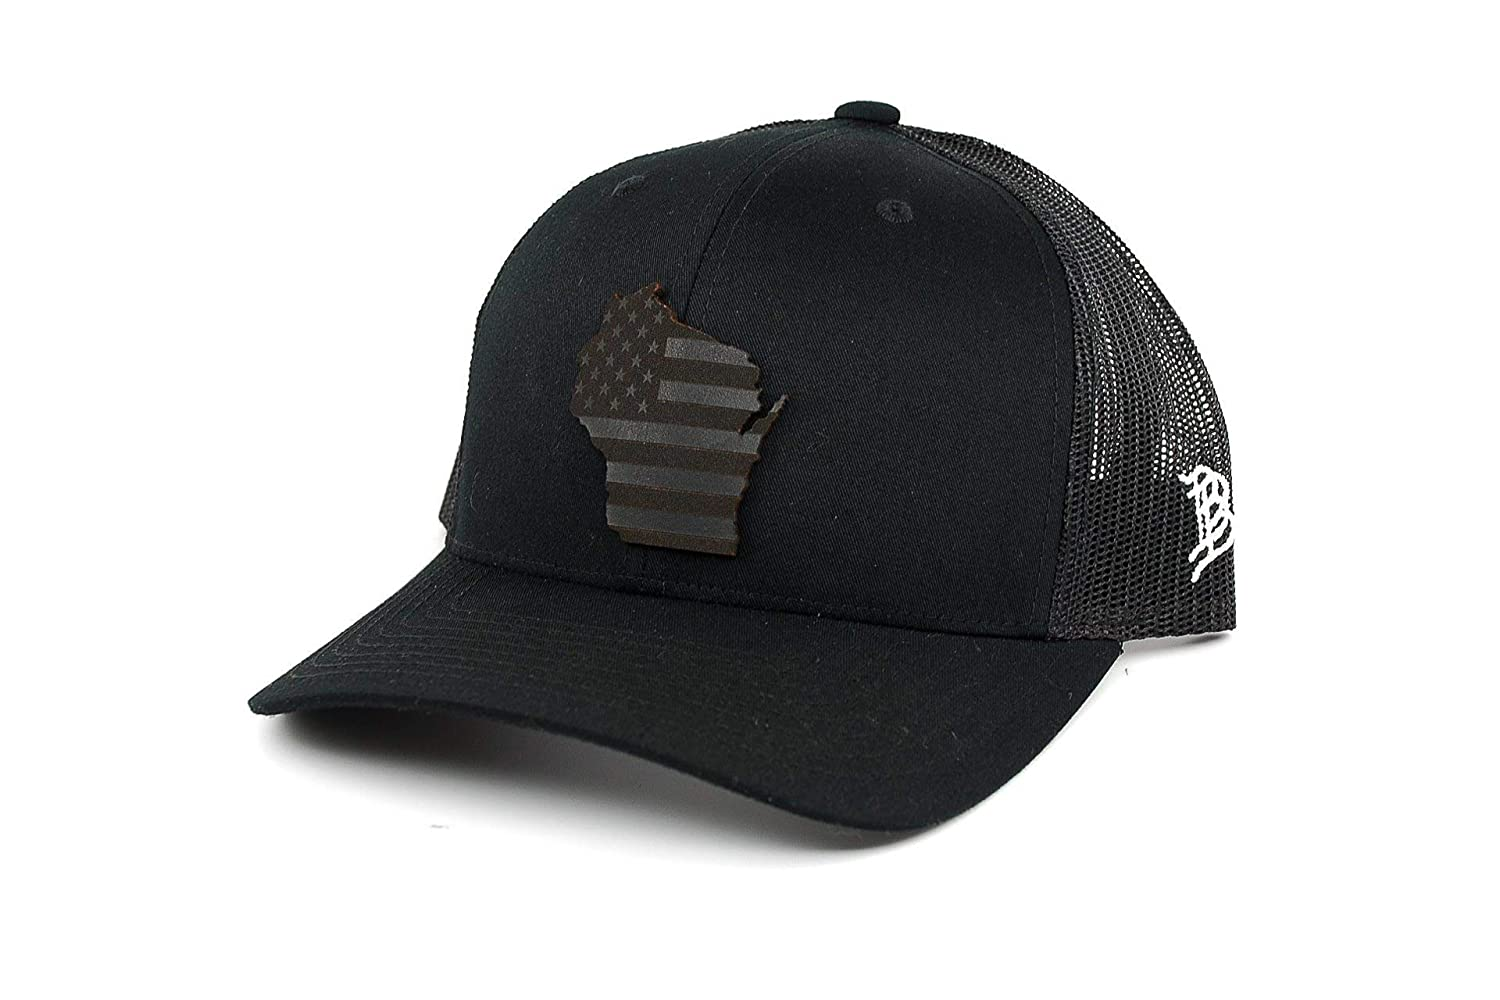 f3570e574fd5a Branded Bills  Midnight Wisconsin Patriot  Black Leather Patch Hat Curved  Trucker - OSFA Black at Amazon Men s Clothing store